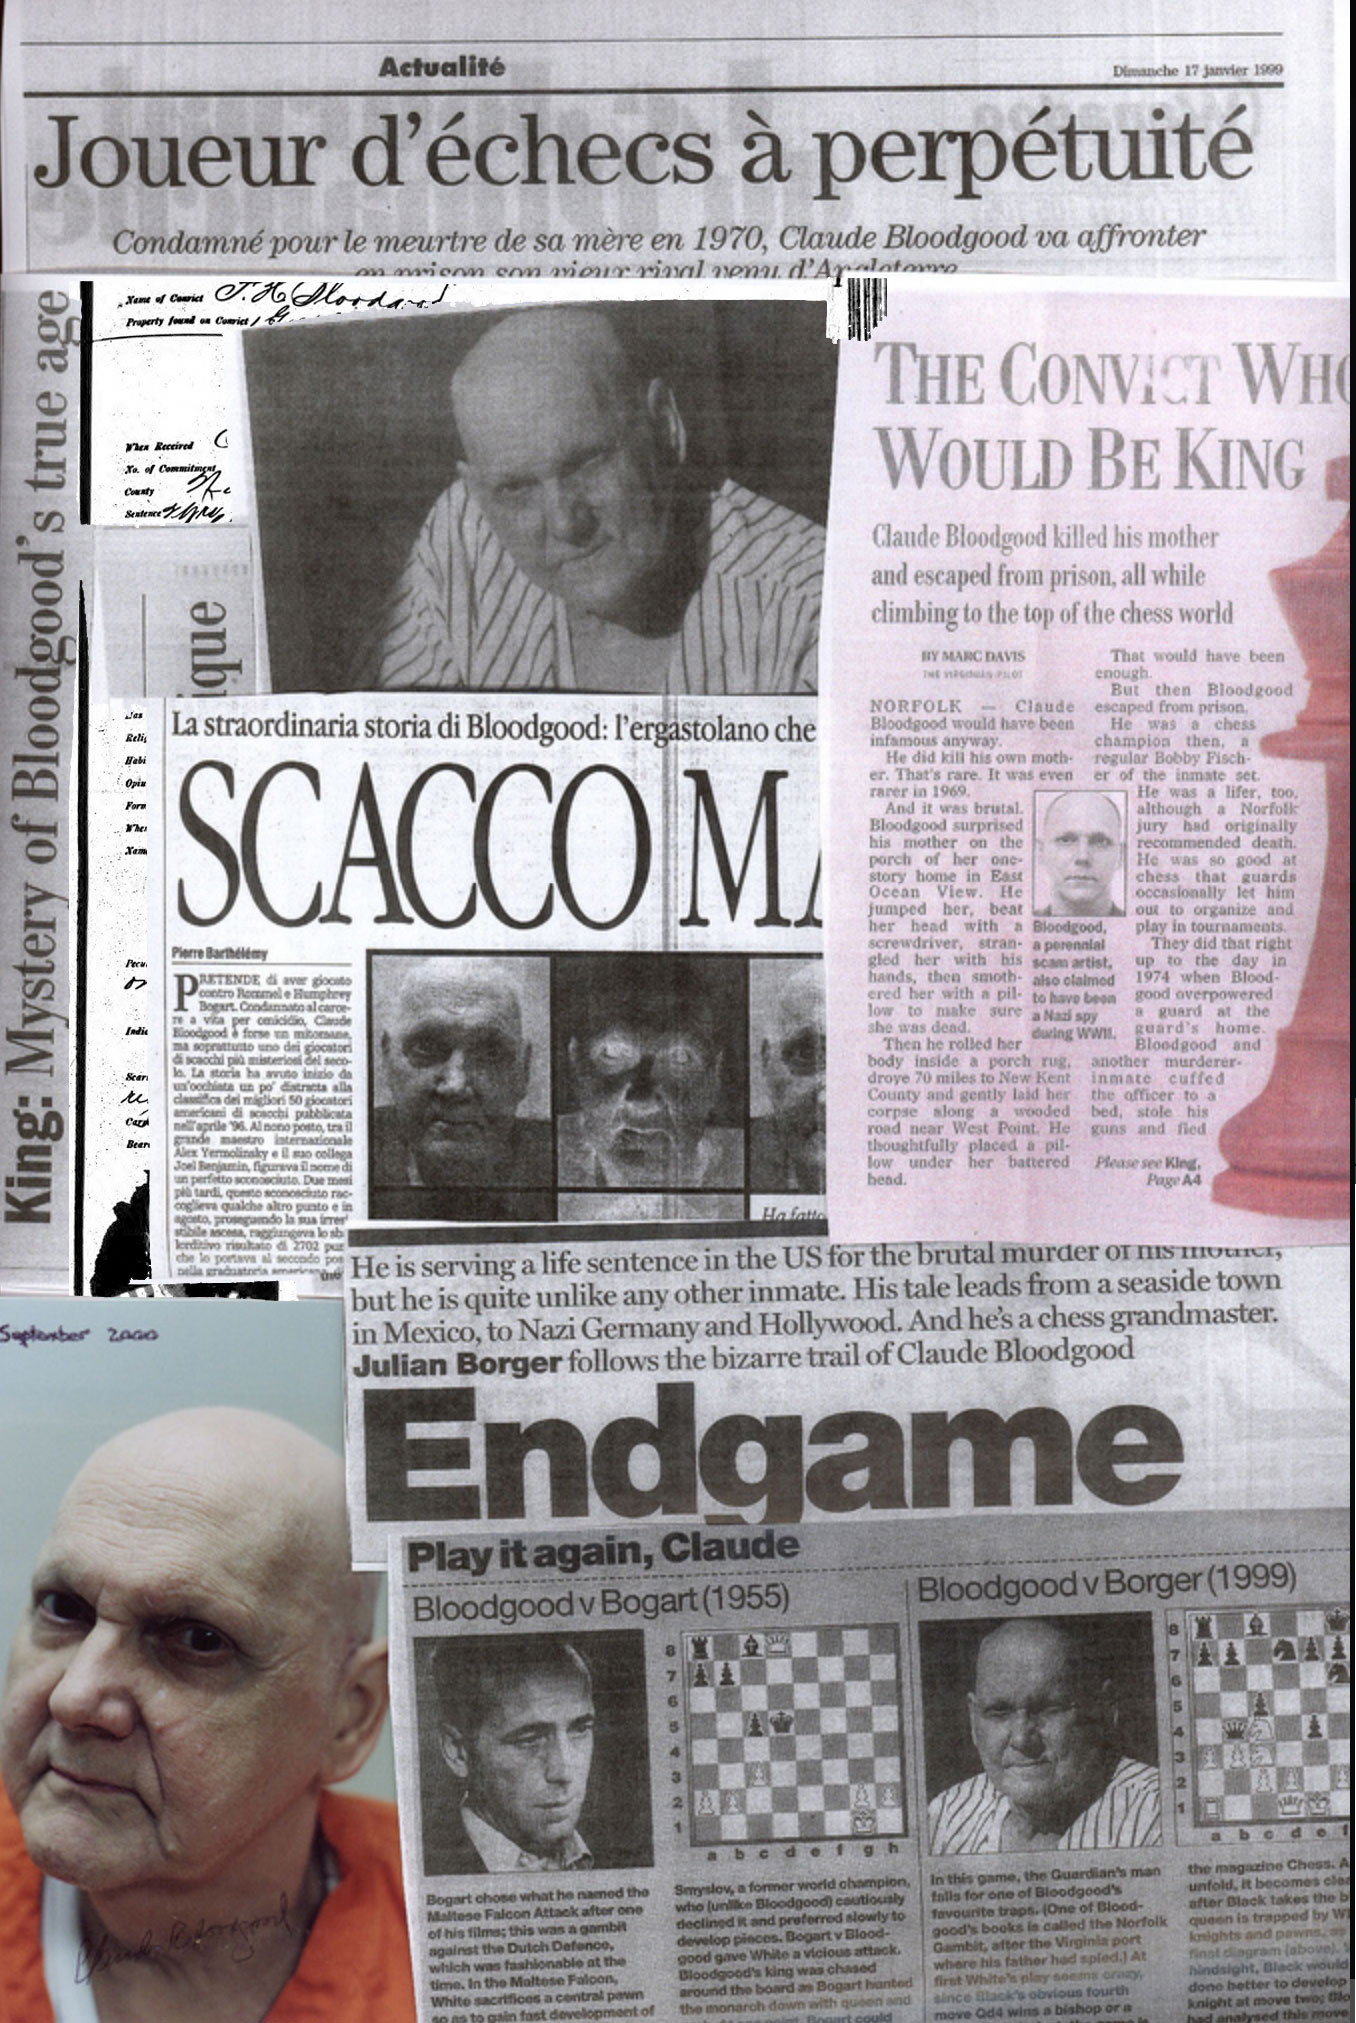 A Collage of Newspaper Articles and Photos of Claude F. Bloodgood